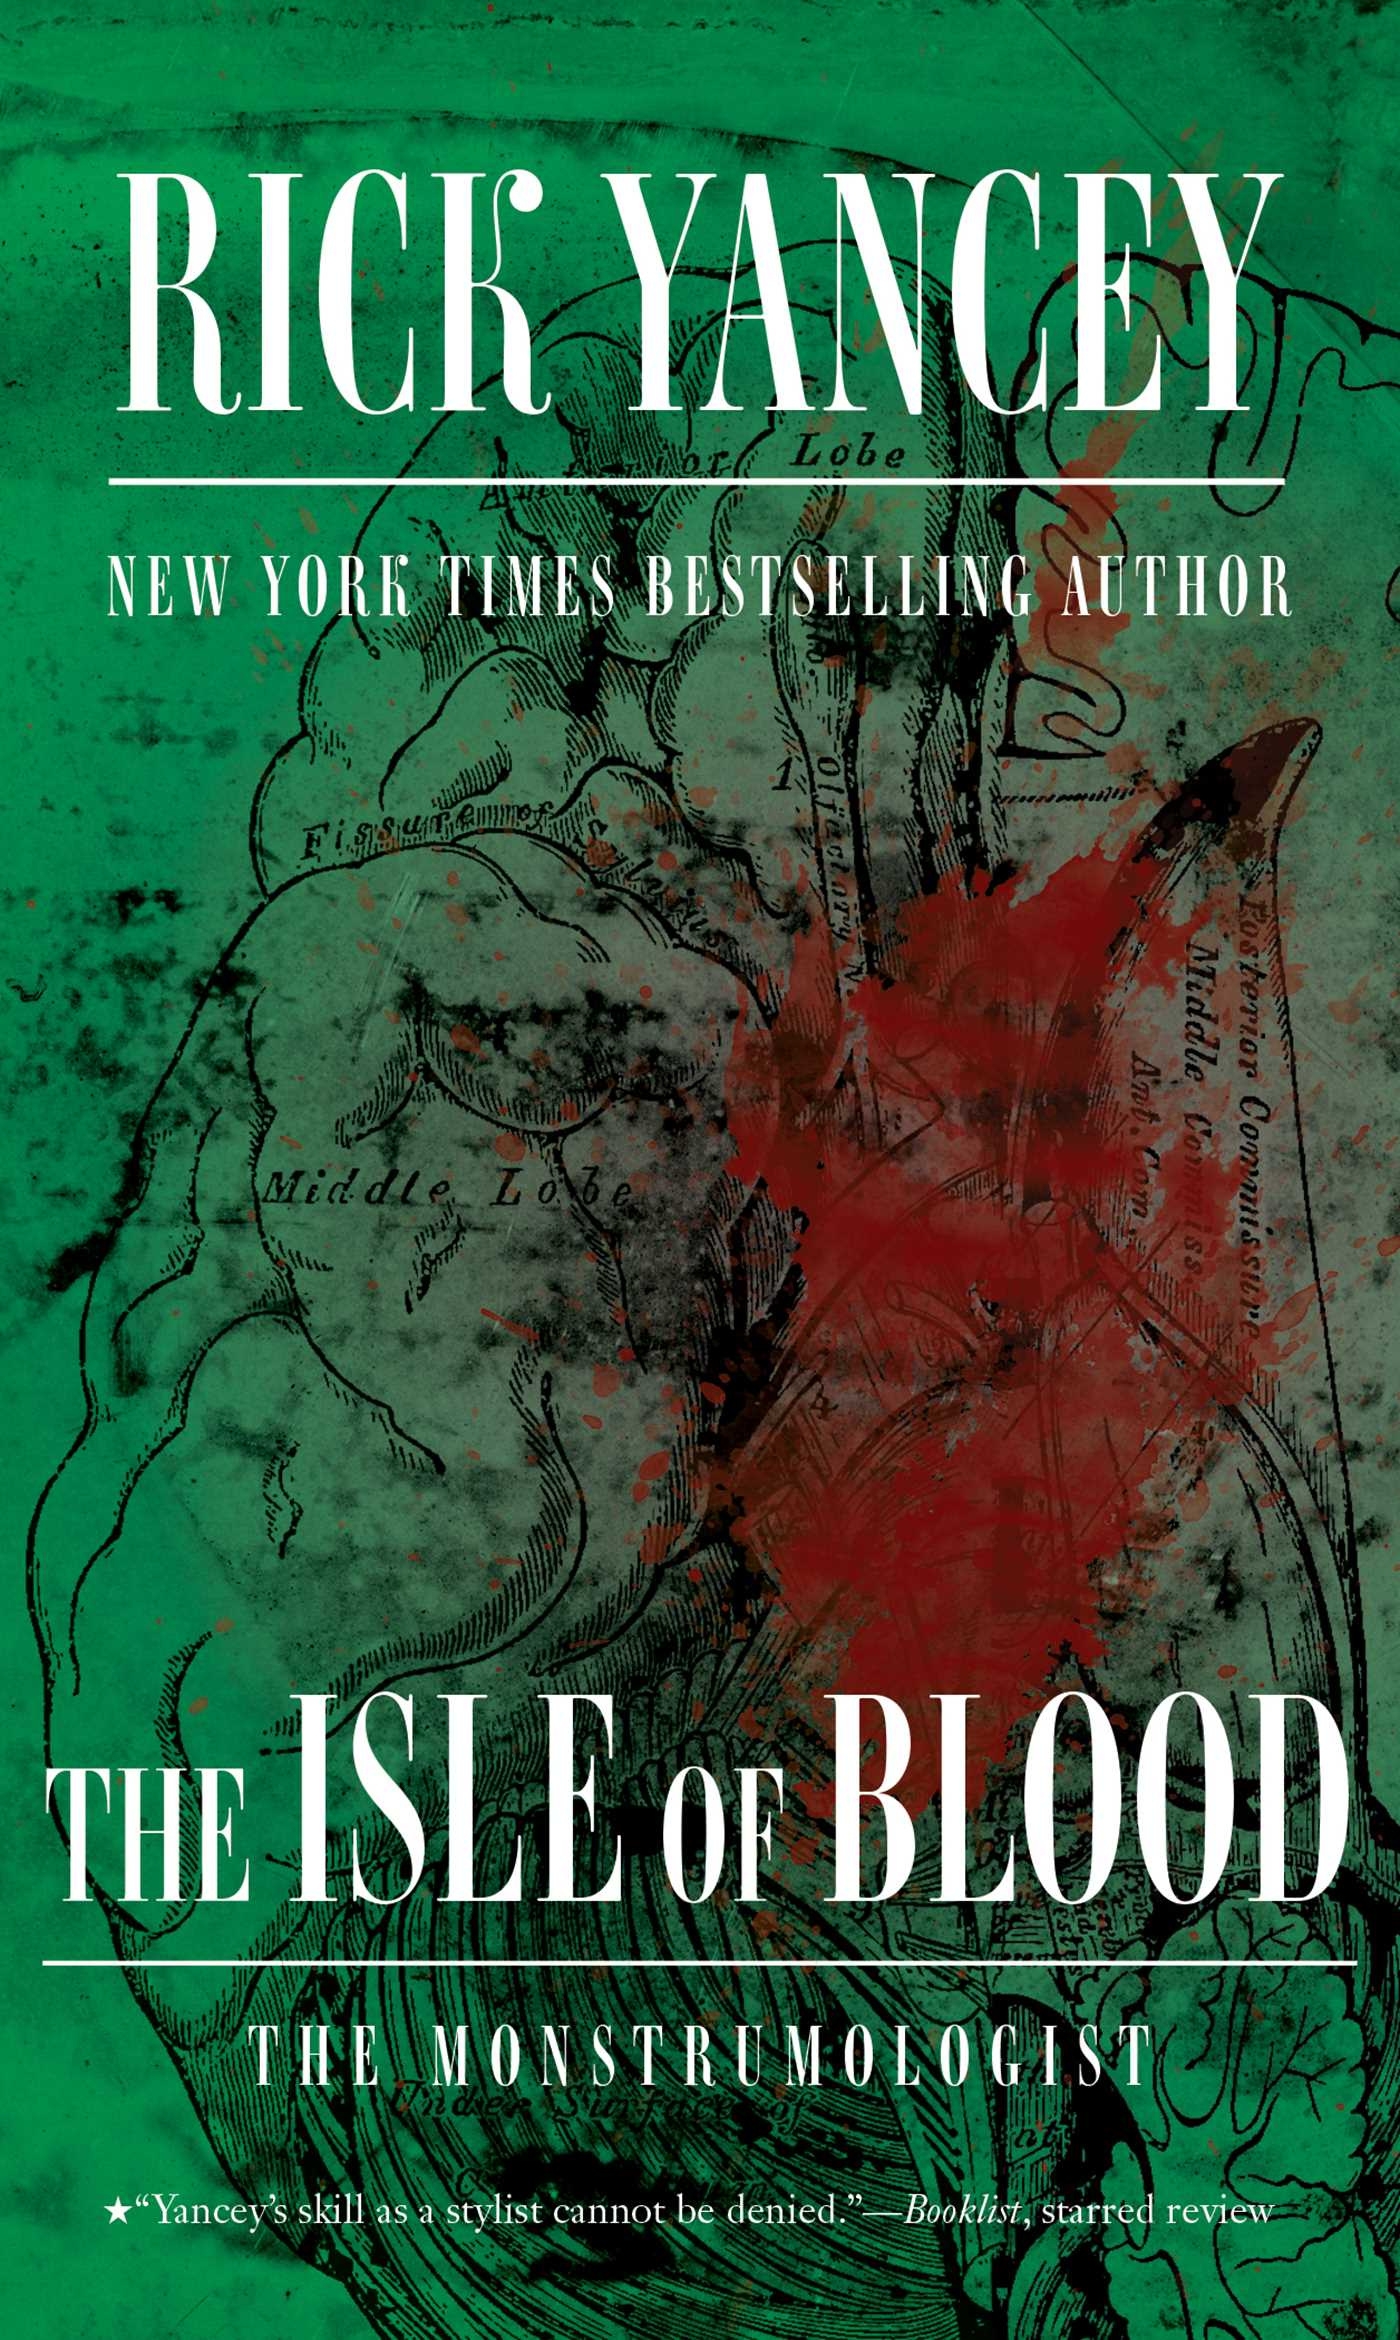 The-isle-of-blood-9781416989745_hr